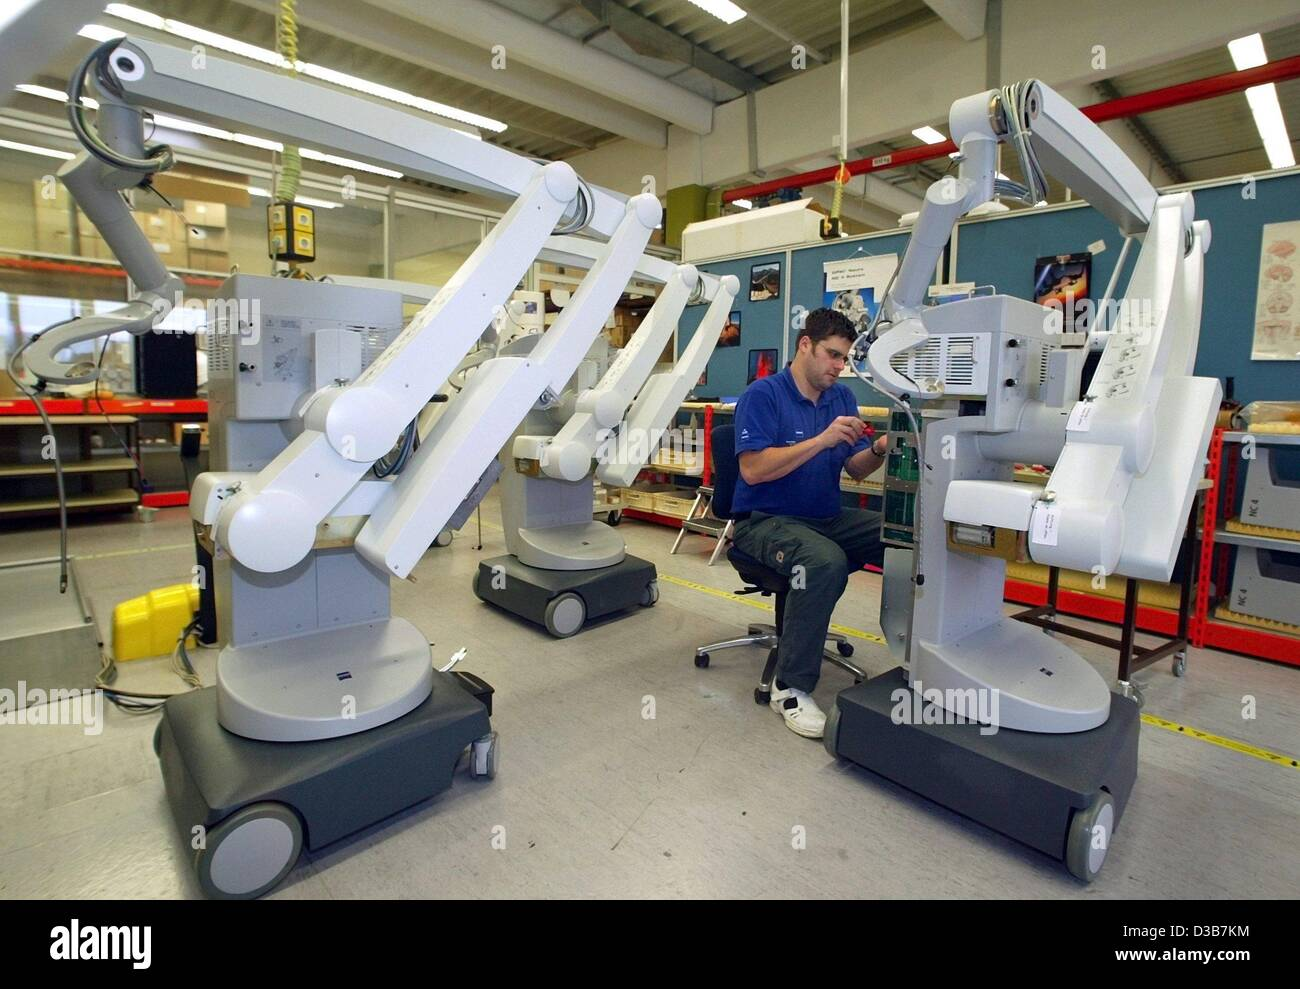 dpa) - An employee of Carl Zeiss is working on tripods for